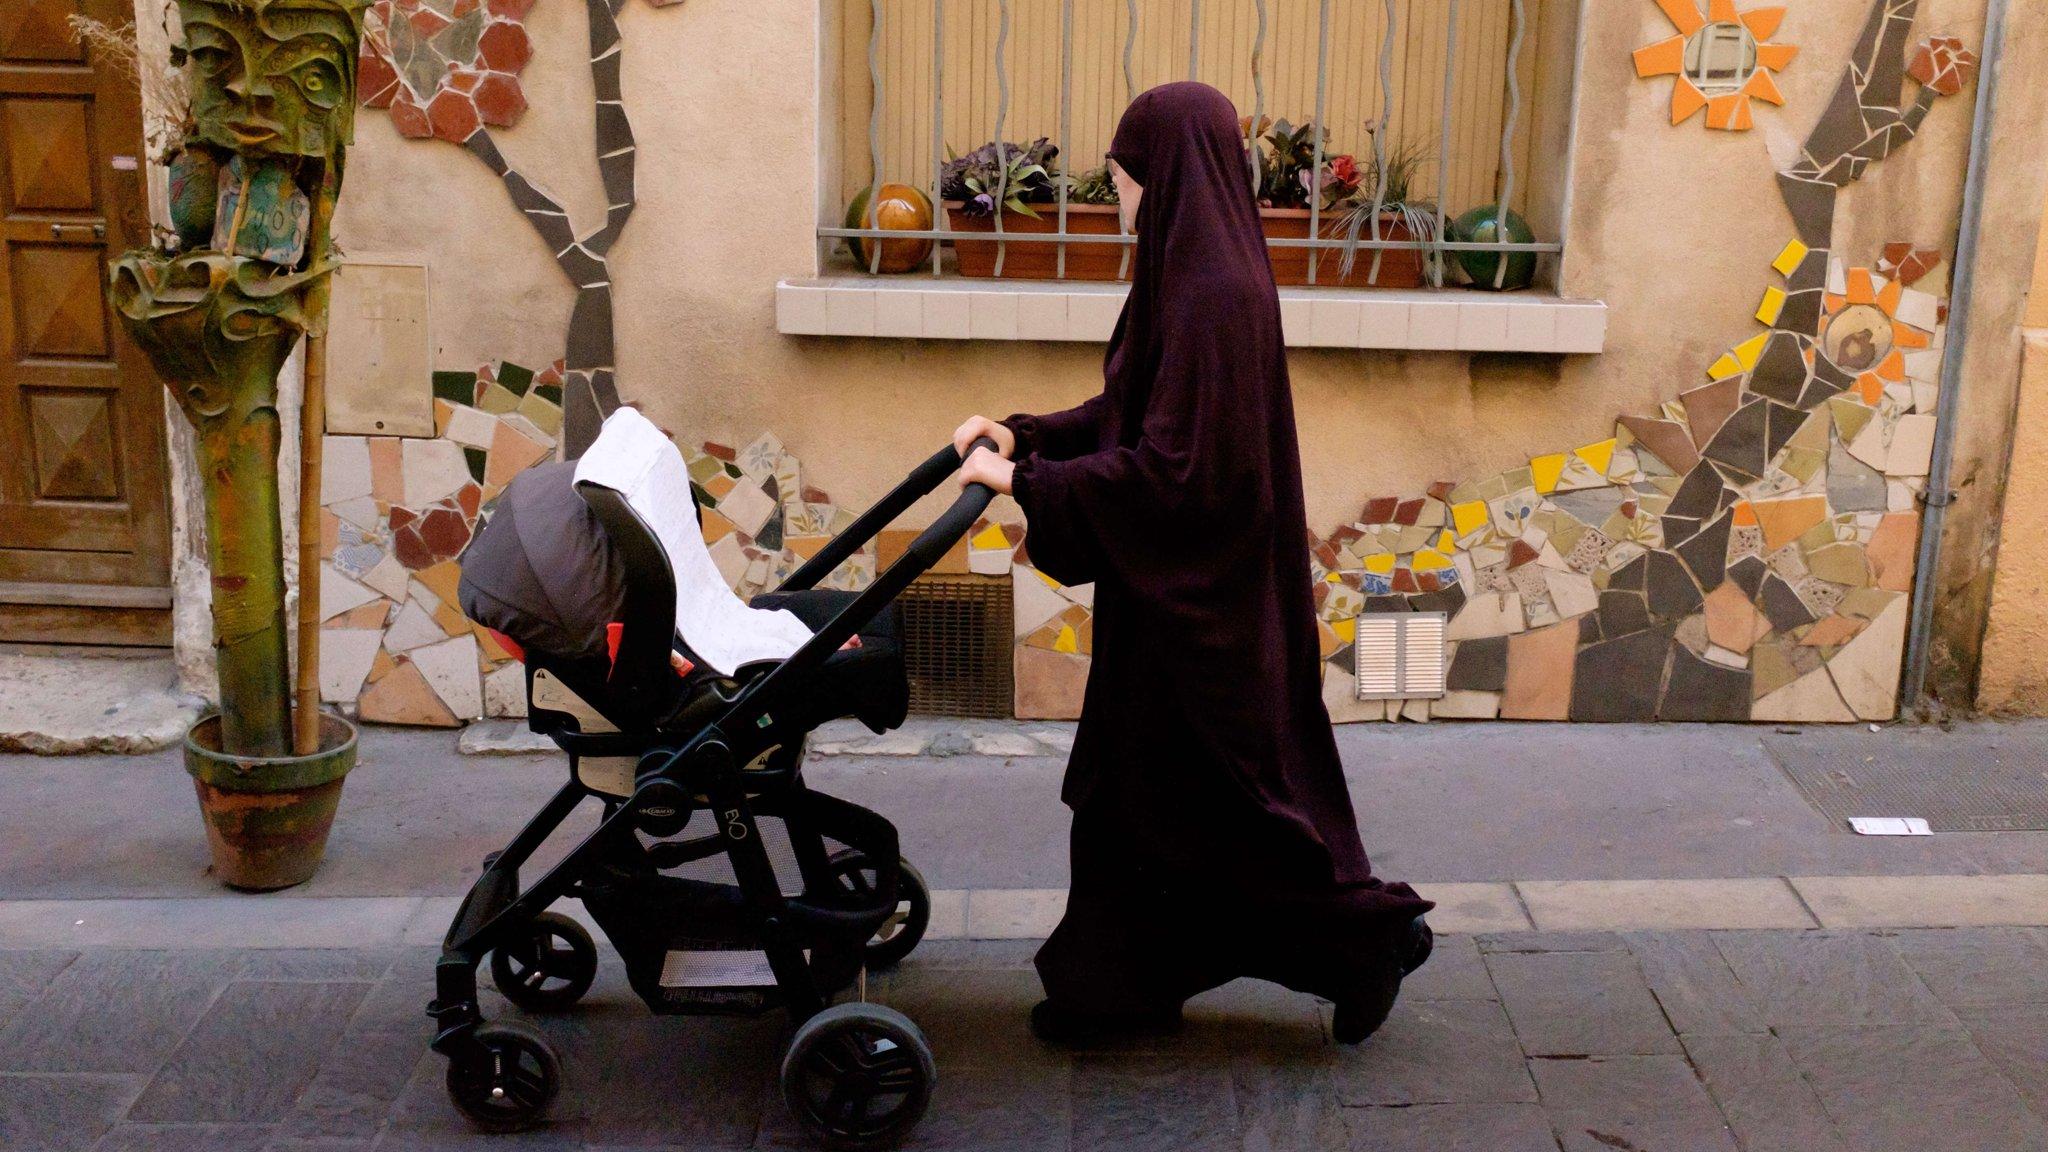 French veil debate uncovers schism on religious symbols